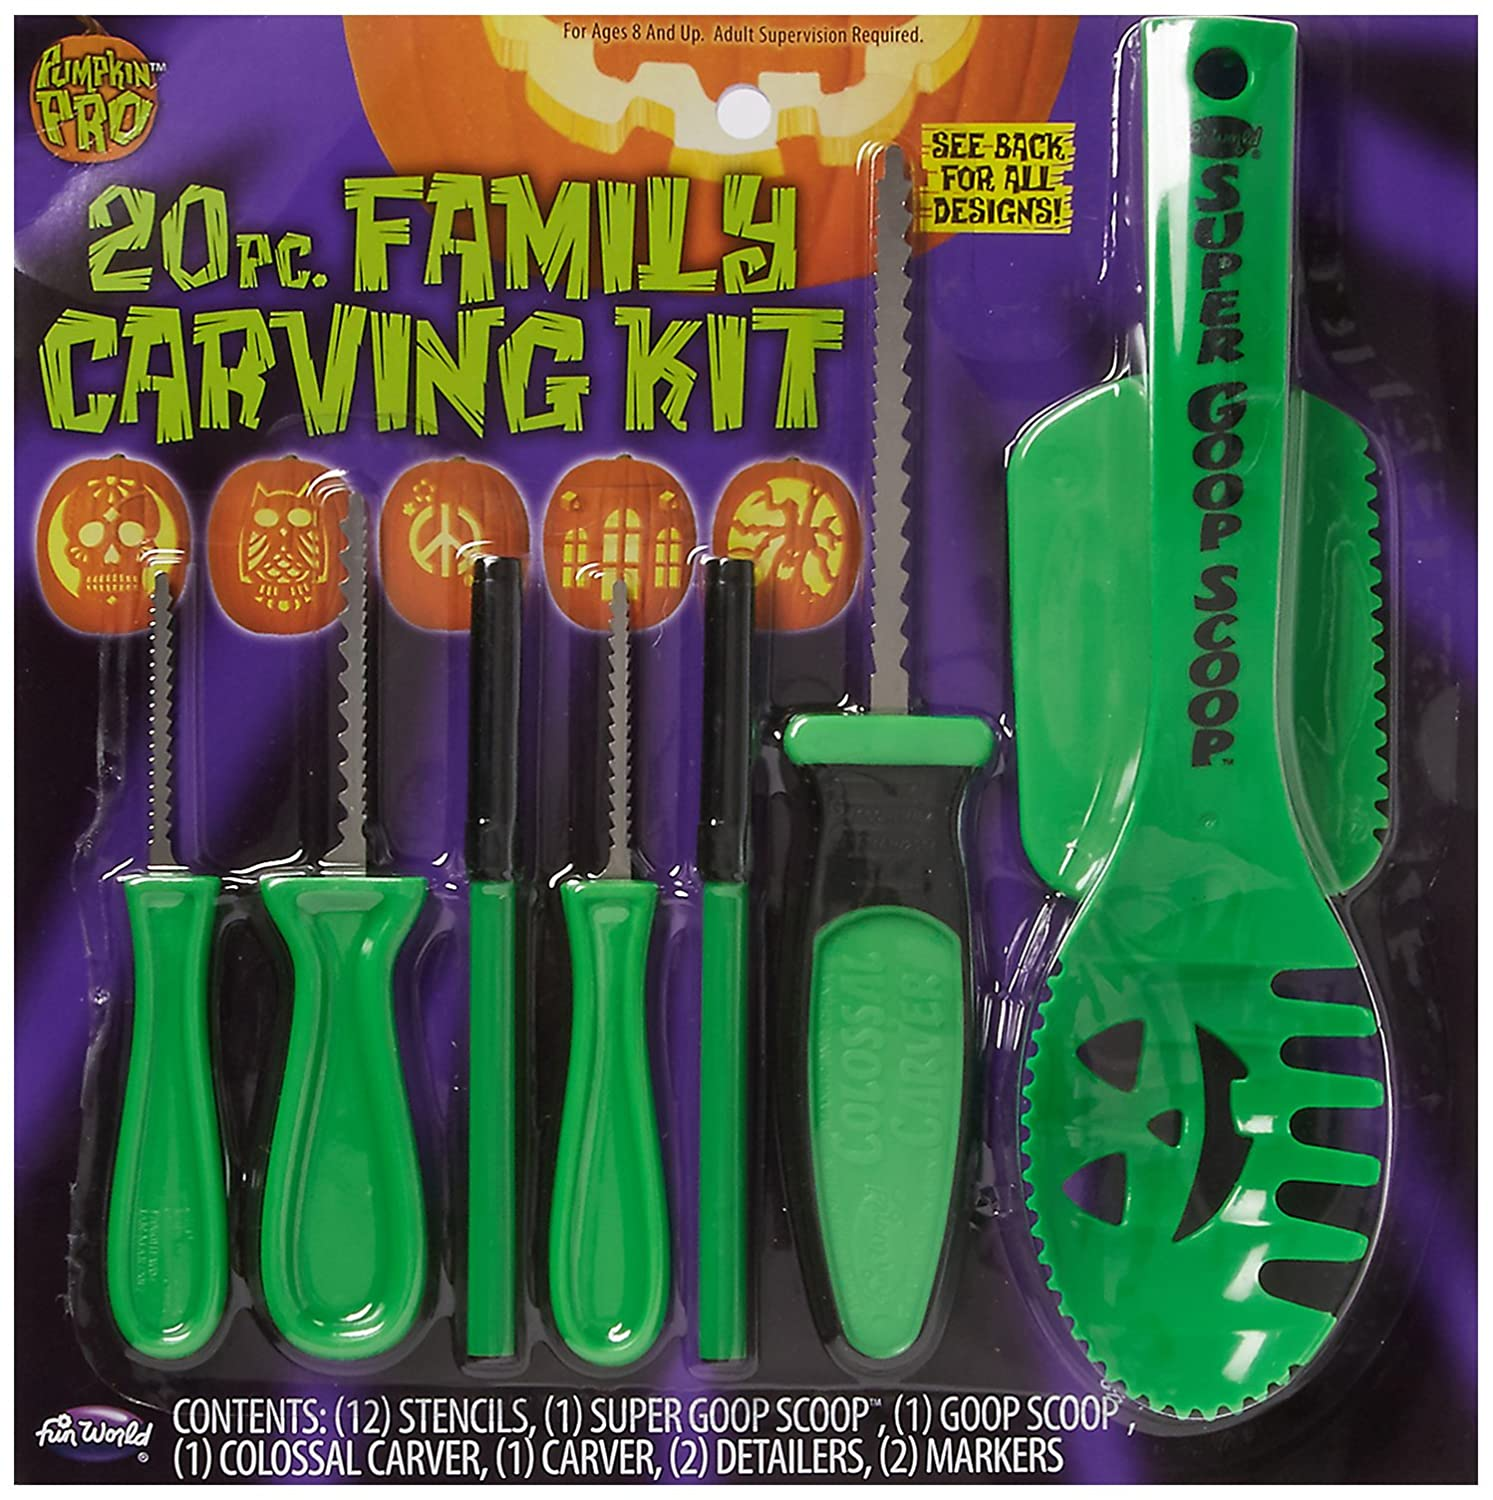 Pumpkin Pro, 20pc. Family Carving Kit - 1 Ct by Pumpkin Masters 94650PDQ